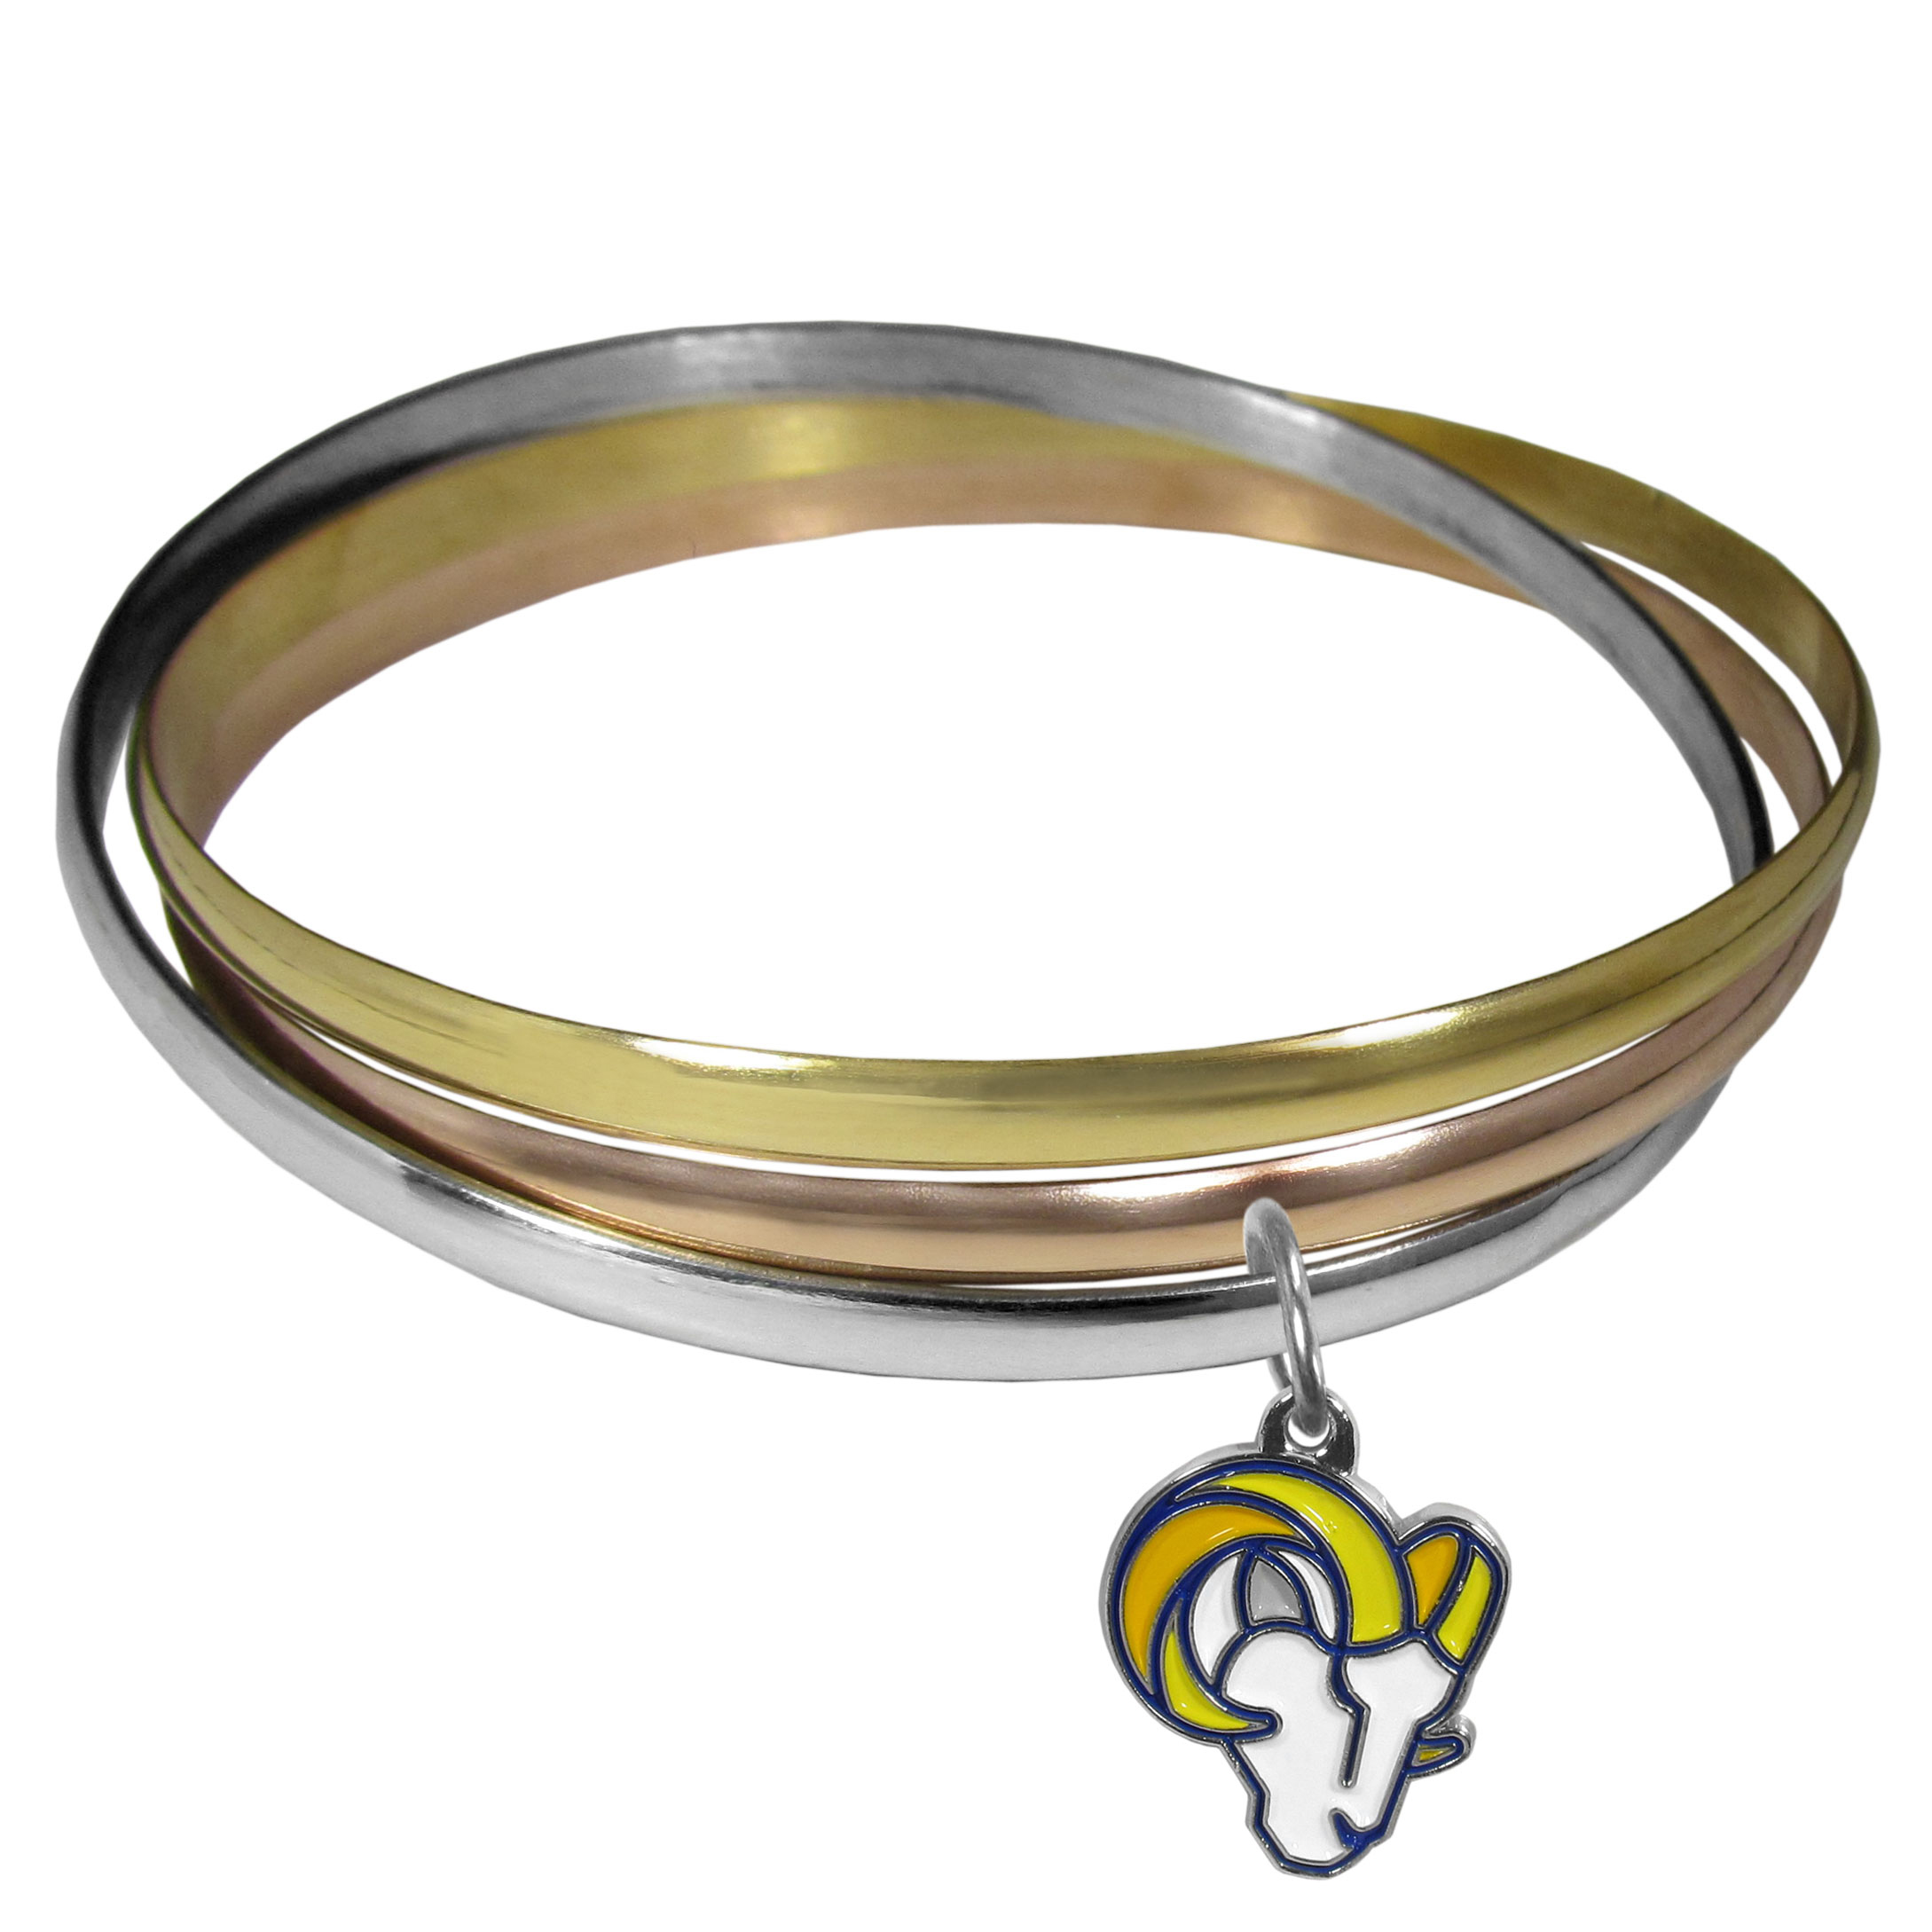 Los Angeles Rams Tri-color Bangle Bracelet - These beautiful bangles come in a interlocking style and feature a fully cast Los Angeles Rams charm with enameled team colors. The bracelet has a silver toned bangle, gold tone bangle and brass toned bangle.